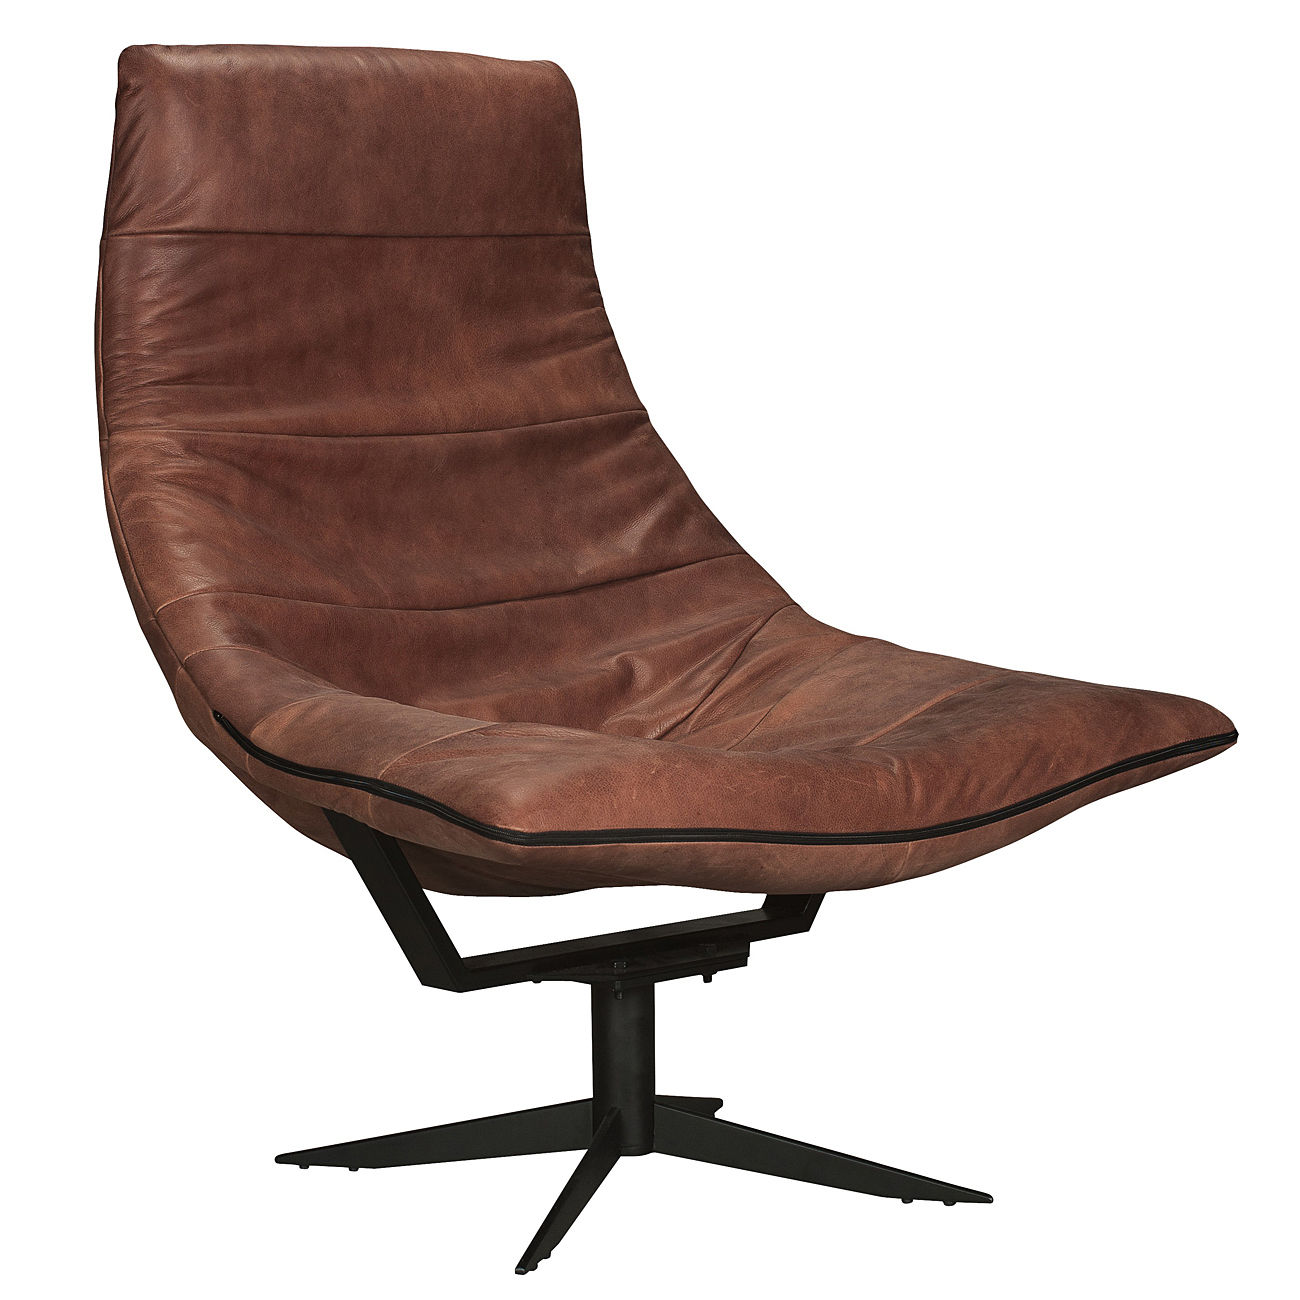 Turner fauteuil Bodilson